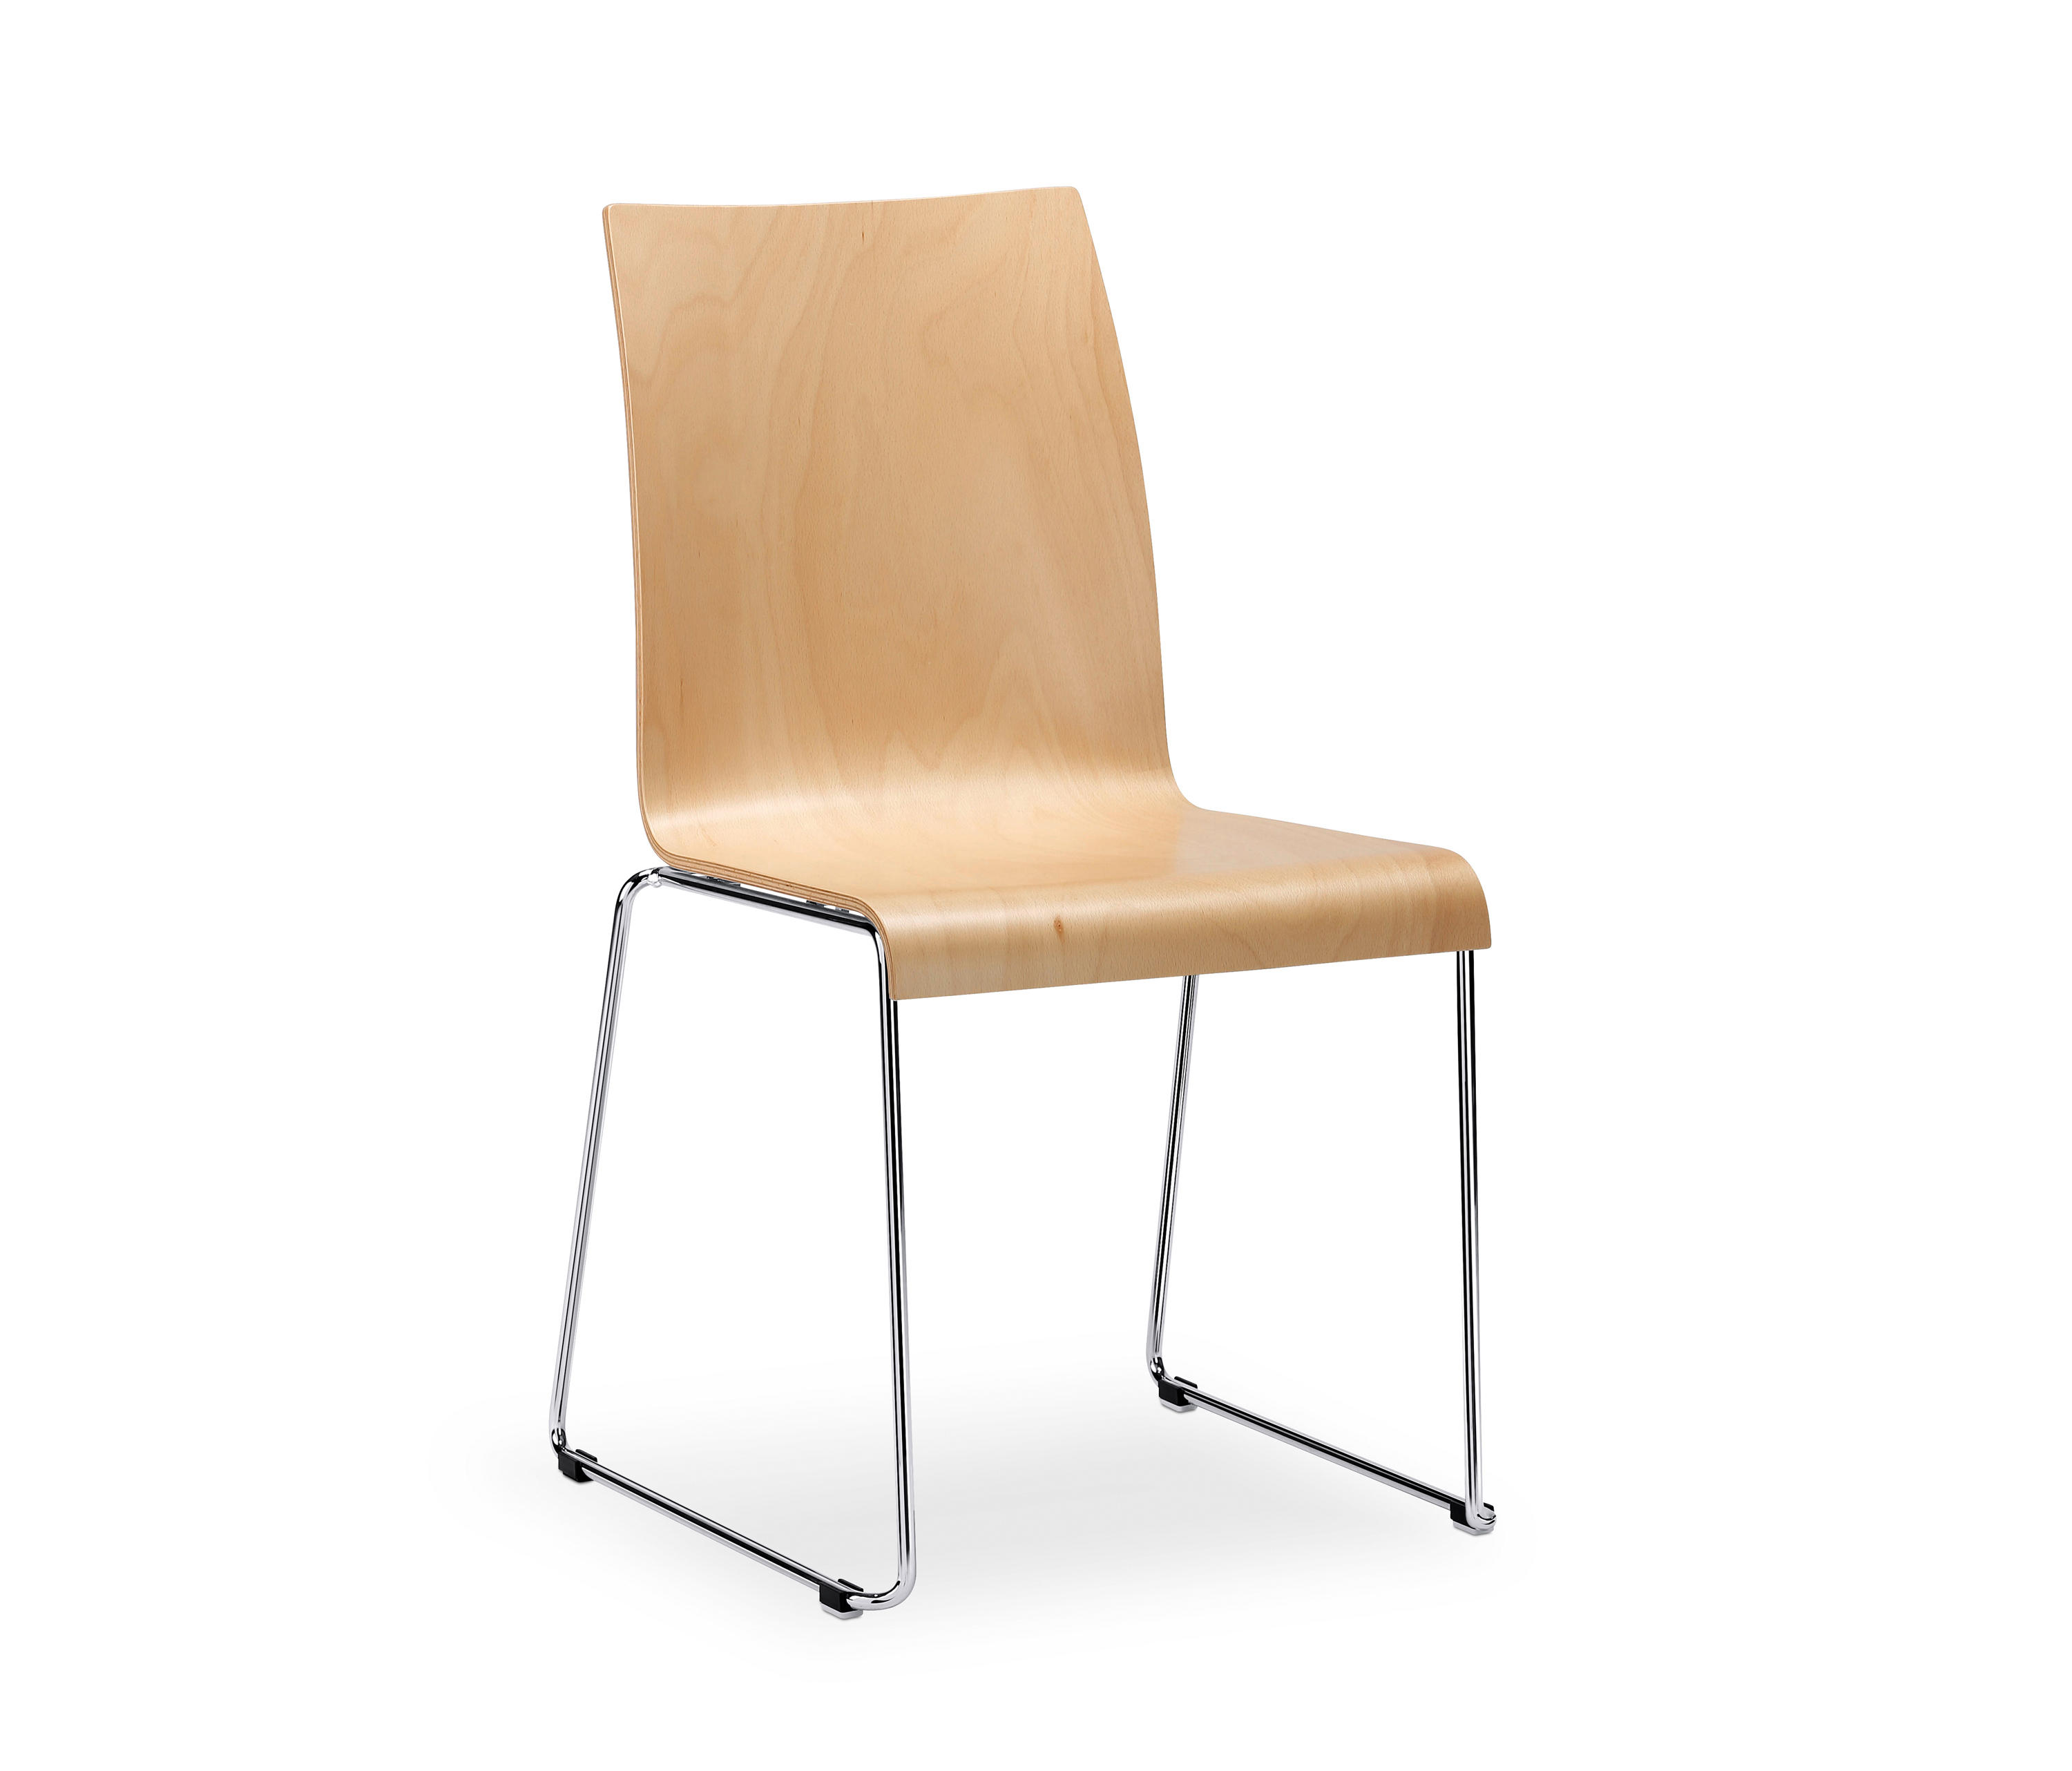 CURVEIS1 C10K - Multipurpose chairs from Interstuhl Büromöbel GmbH ...